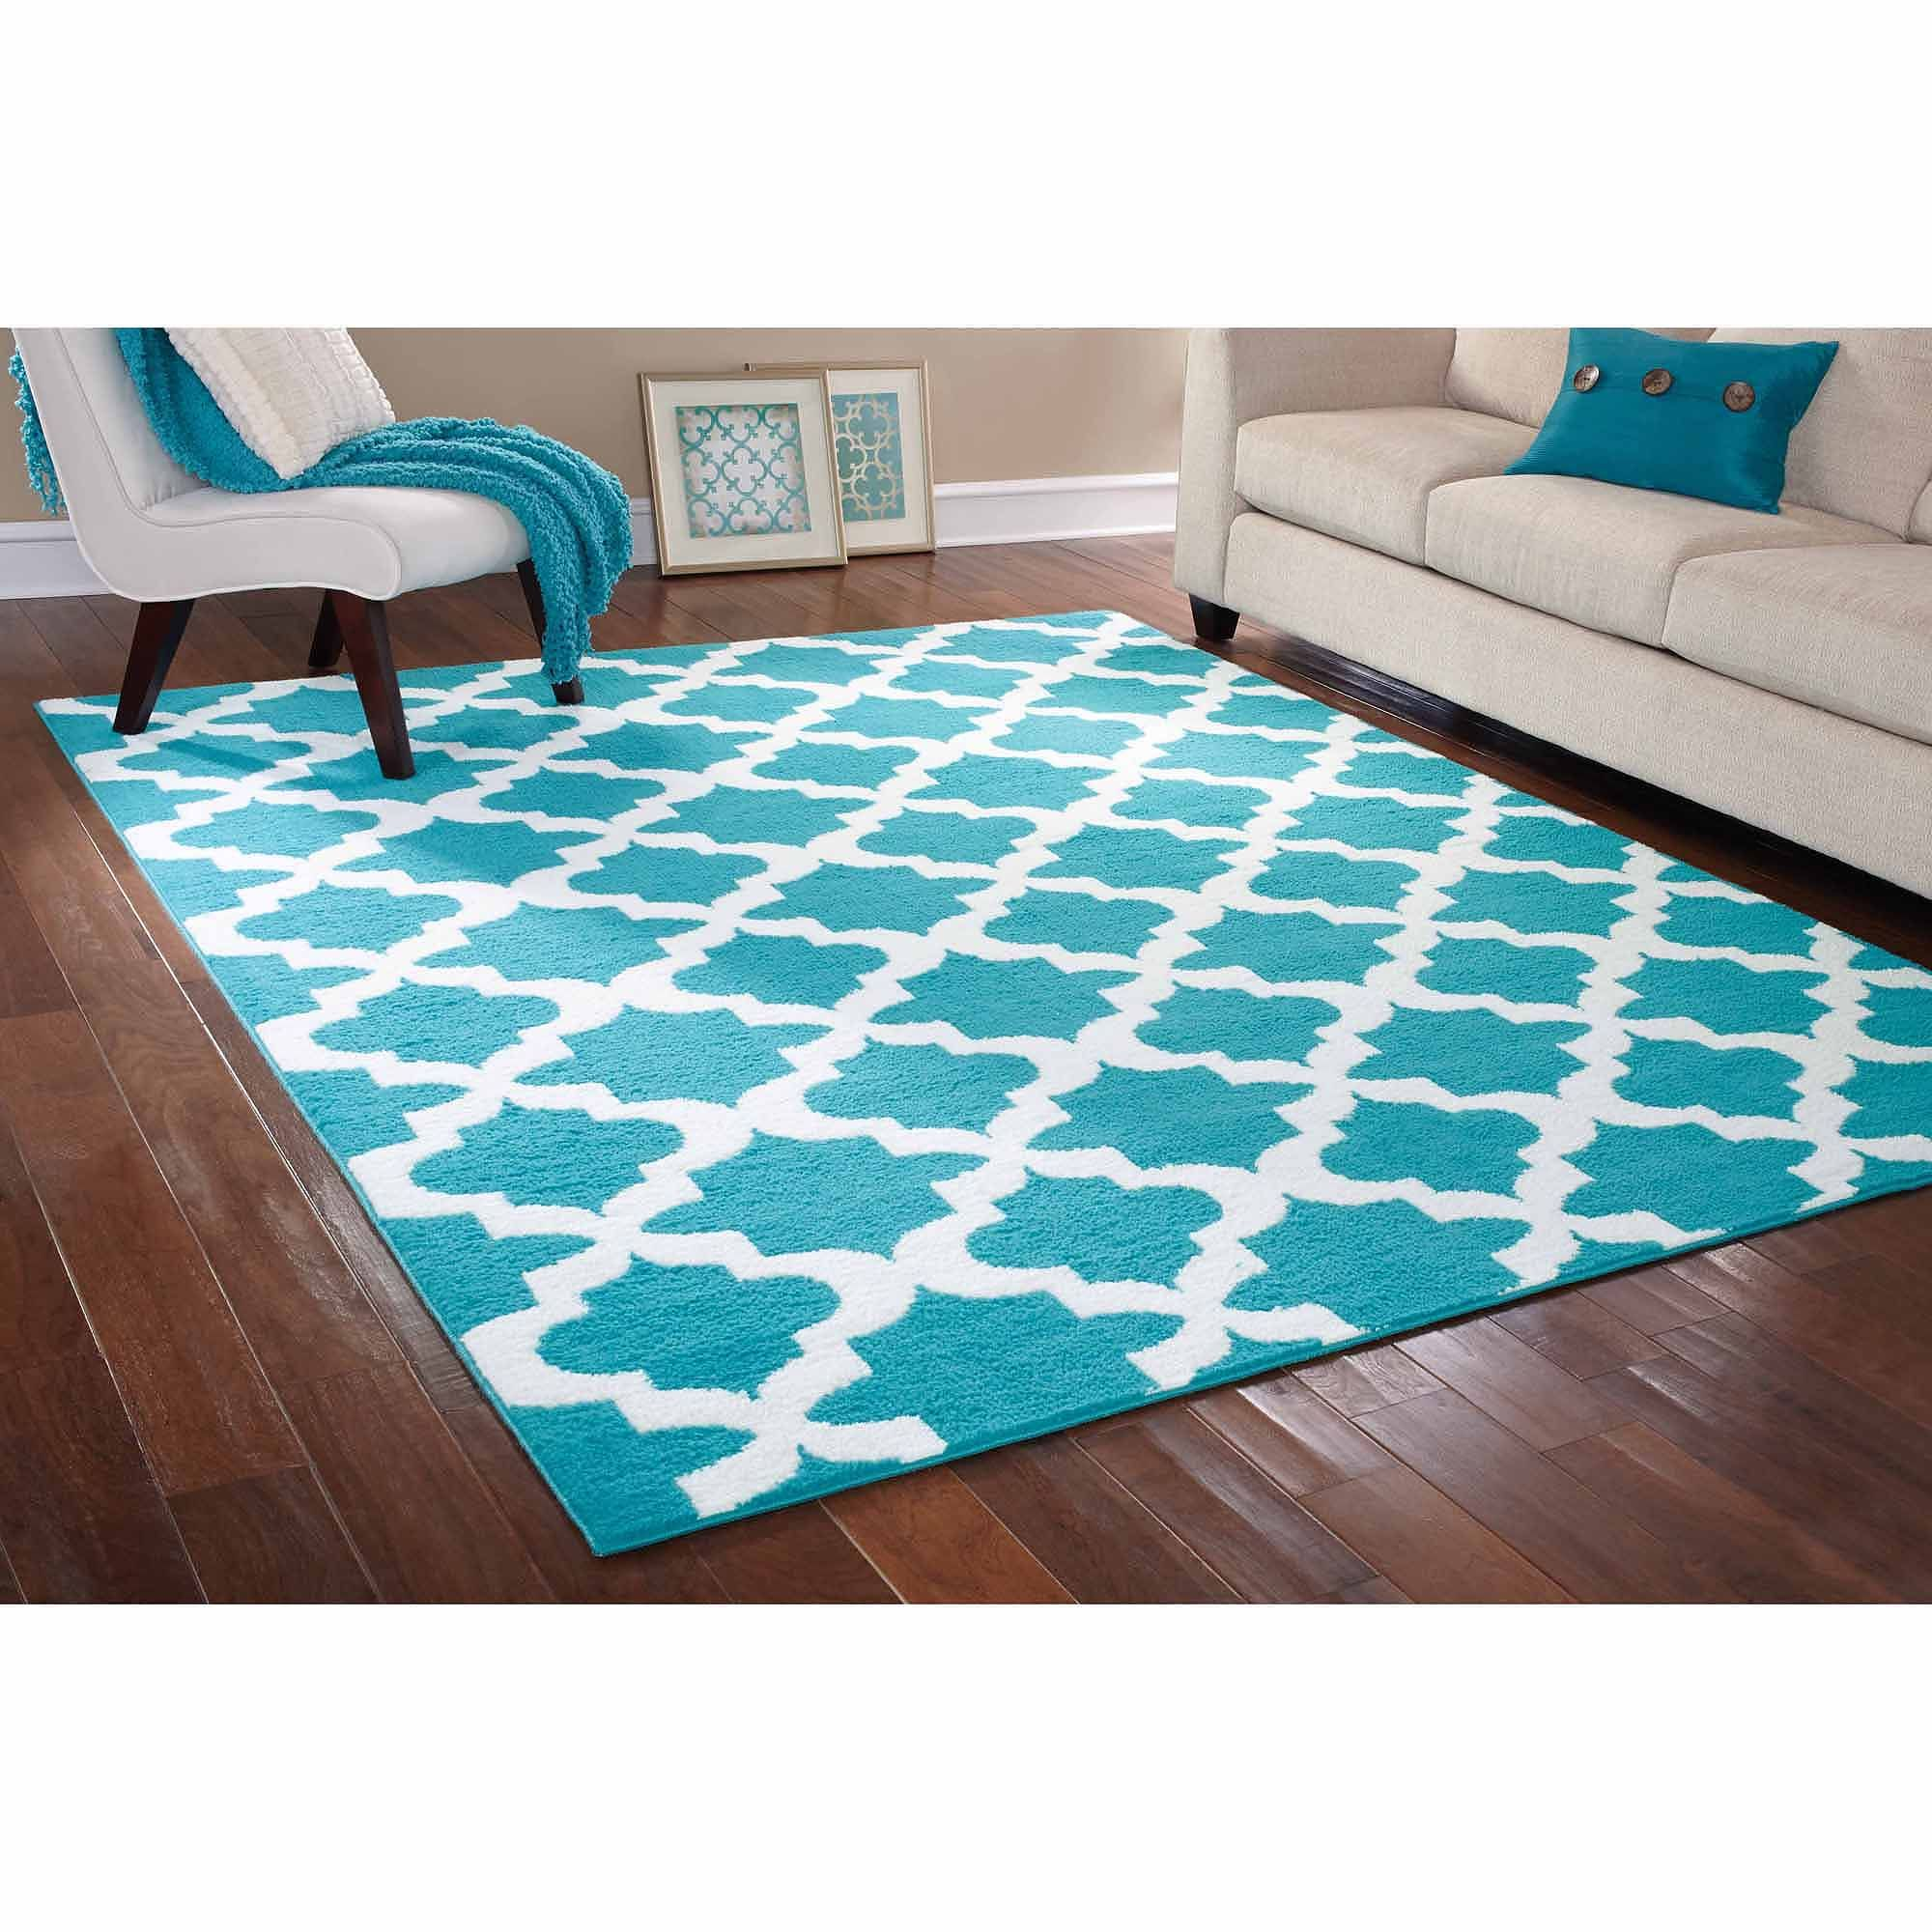 Home In 2019 Turquoise Rug Area Rugs Rugs